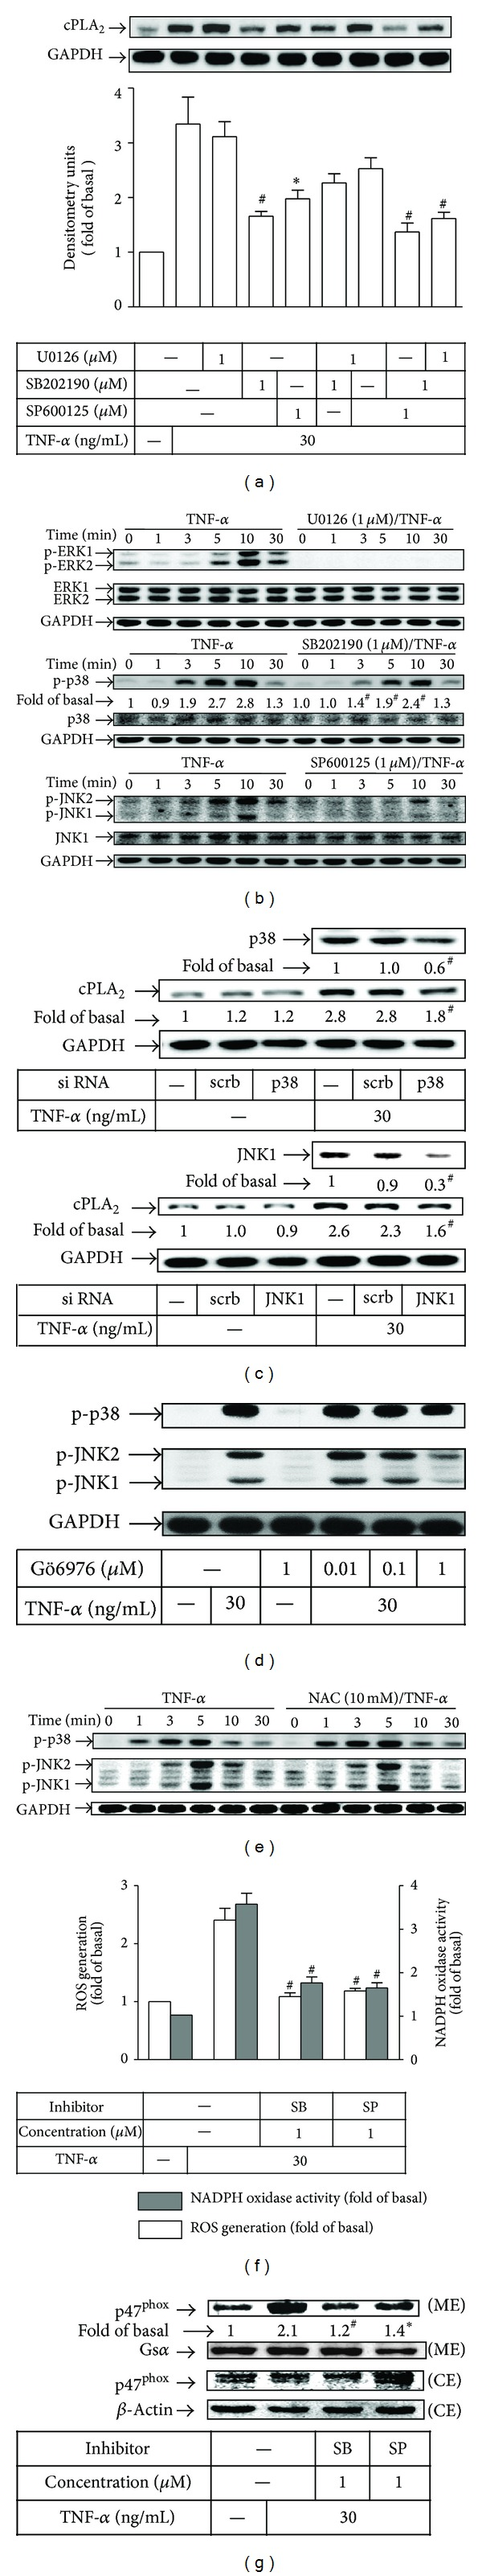 Involvement of PKC α -dependent p38 MAPK and JNK1/2 in TNF- α -mediated ROS generation and cPLA 2 expression. (a) Cells were pretreated with U0126, <t>SB202190,</t> or SP600125, or combinatorial treatment for 1 h, and then incubated with TNF- α for 16 h. The expression of cPLA 2 was determined by Western blotting. (b) Cells were pretreated with or without U0126, SB202190, or SP600125 for 1 h and then incubated with TNF- α for the indicated time intervals. (c) Cells were transfected with scrambled, p38, or JNK1 siRNA and then incubated with TNF- α for 16 h. The levels of p38, JNK1, and cPLA 2 were determined by Western blotting. (d) Cells were pretreated with Gö6976 for 1 h and then stimulated with TNF- α for 30 min. The levels of phospho-p38 MAPK and phospho-JNK1/2 were determined by Western blotting. (e) Cells were pretreated with NAC for 1 h, and then incubated with TNF- α for the indicated time intervals. The levels of phospho-p38 MAPK and phospho-JNK1/2 were determined by Western blotting. (f) Cells were pretreated with SB202190 (1 μ M) or SP600125 (1 μ M) for 1 h before exposure to TNF- α for 1 h (shaded bars) or 2 h (open bars). The NOX activity (shaded bars) and ROS generation (open bars) were analyzed. (g) Cells were pretreated with SB202190 (1 μ M) or SP600125 (1 μ M) for 1 h before exposure to TNF- α for 1 h. The membrane (ME) and cytosolic (CE) fractions were prepared and subjected to Western blotting using an anti-p47 phox antibody. All analyses were performed on samples from 4 RA patients. Results are representative of 3 independent experiments. Values in (a), (c), (f), and (g) are the mean ± SEM. * P